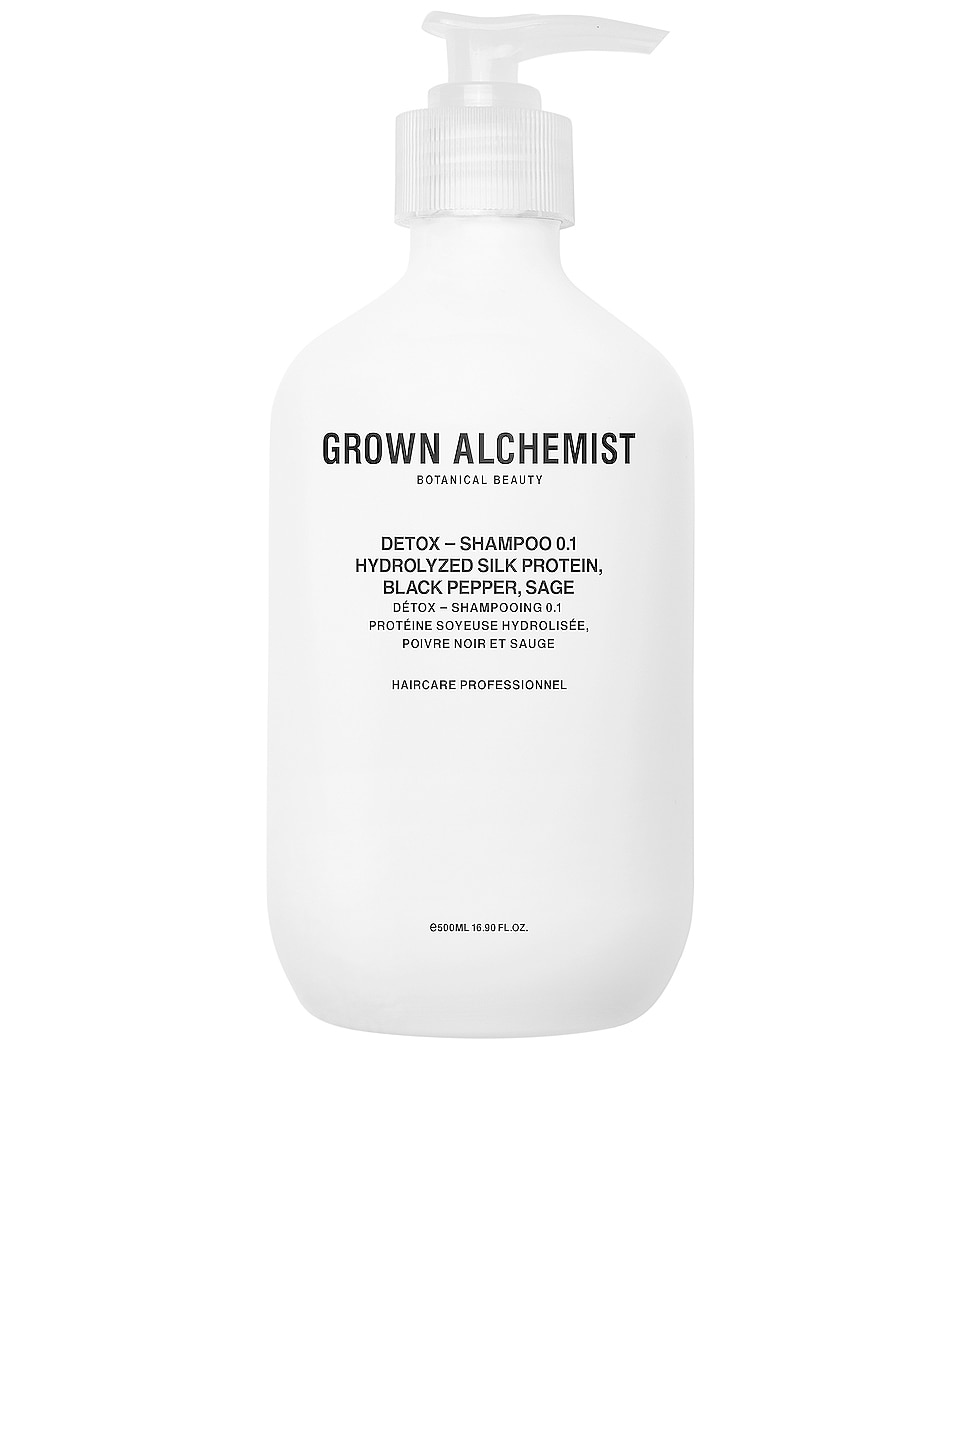 Grown Alchemist Detox Shampoo 0.1 in Hydrolyzed Silk Protein & Black Pepper & Sage